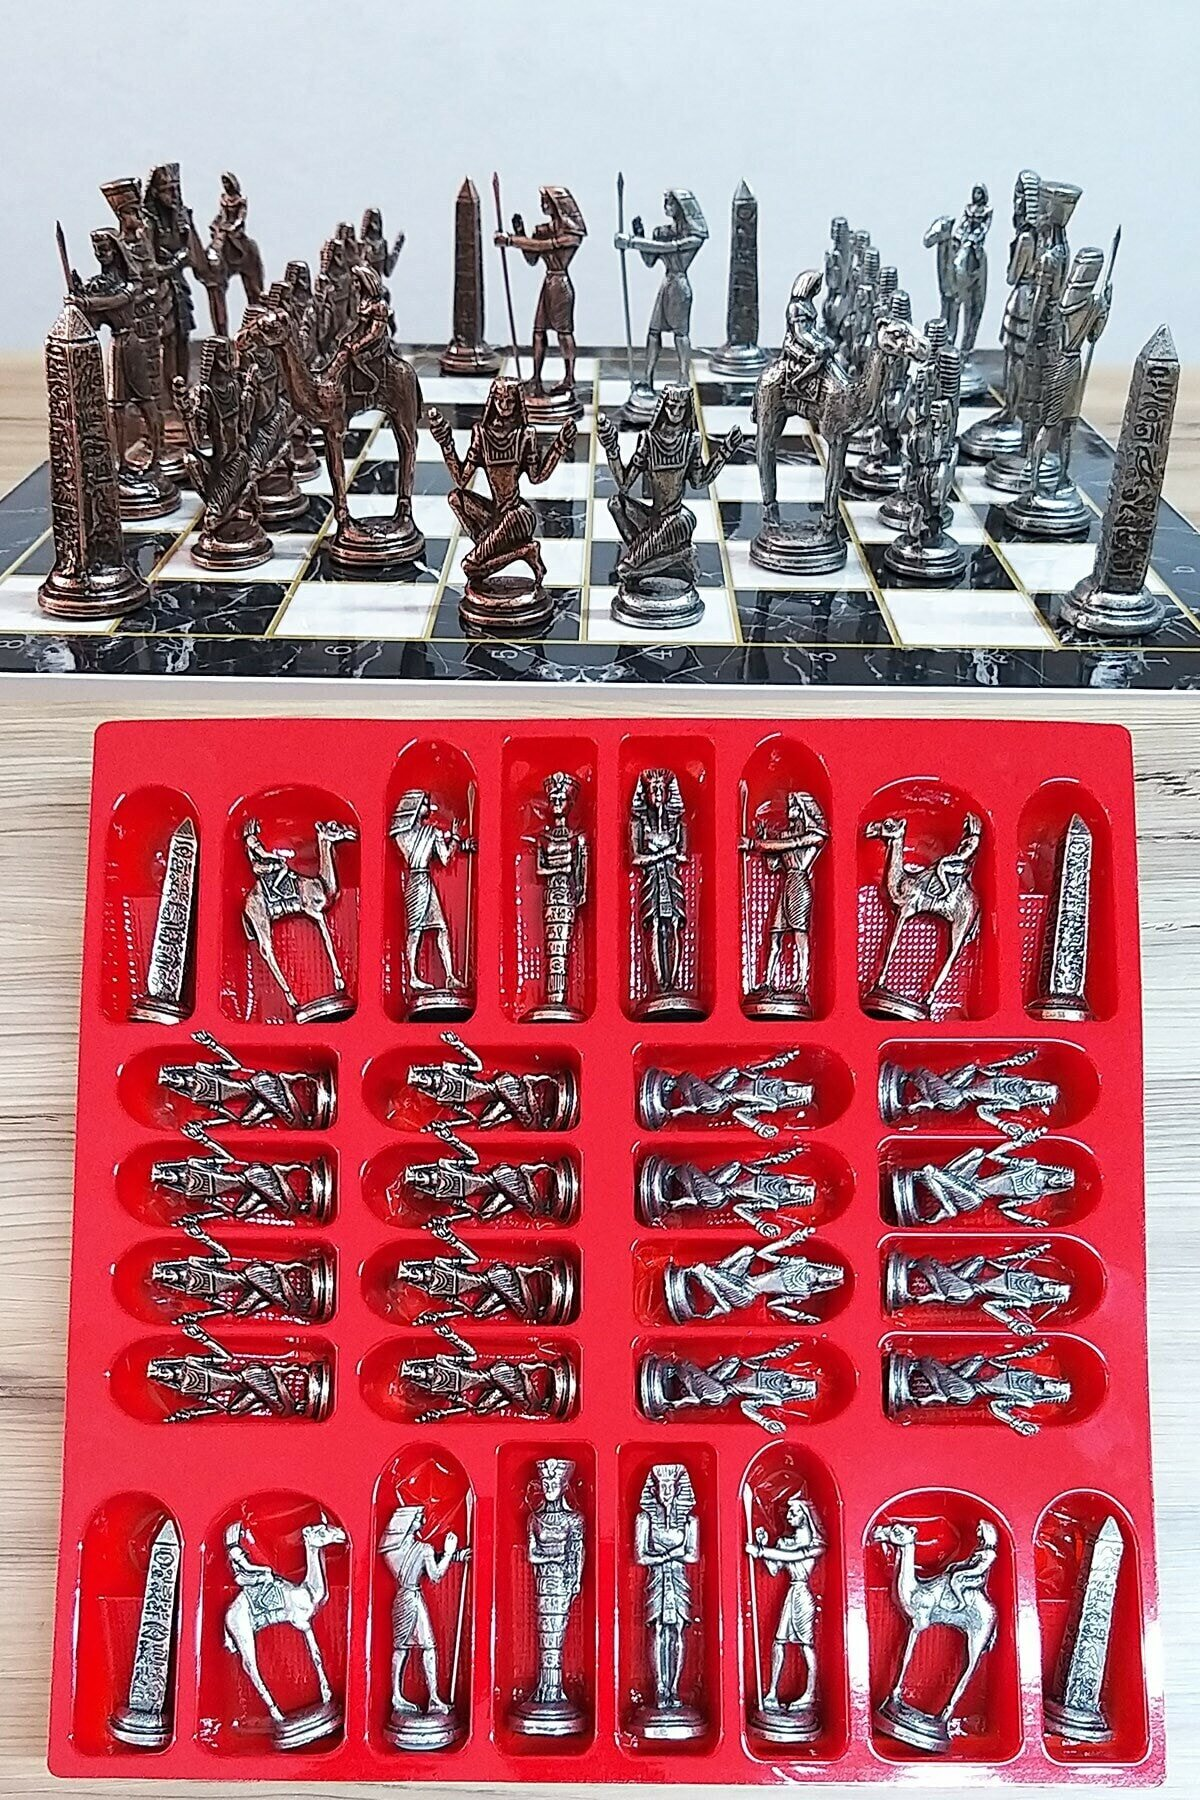 Toy Net Chrome Copper Chess Set With Egyptian Pharaoh Armies Soldier Figure 33x33 Cm Plated Marble Table Toy Net Chrome Copper C